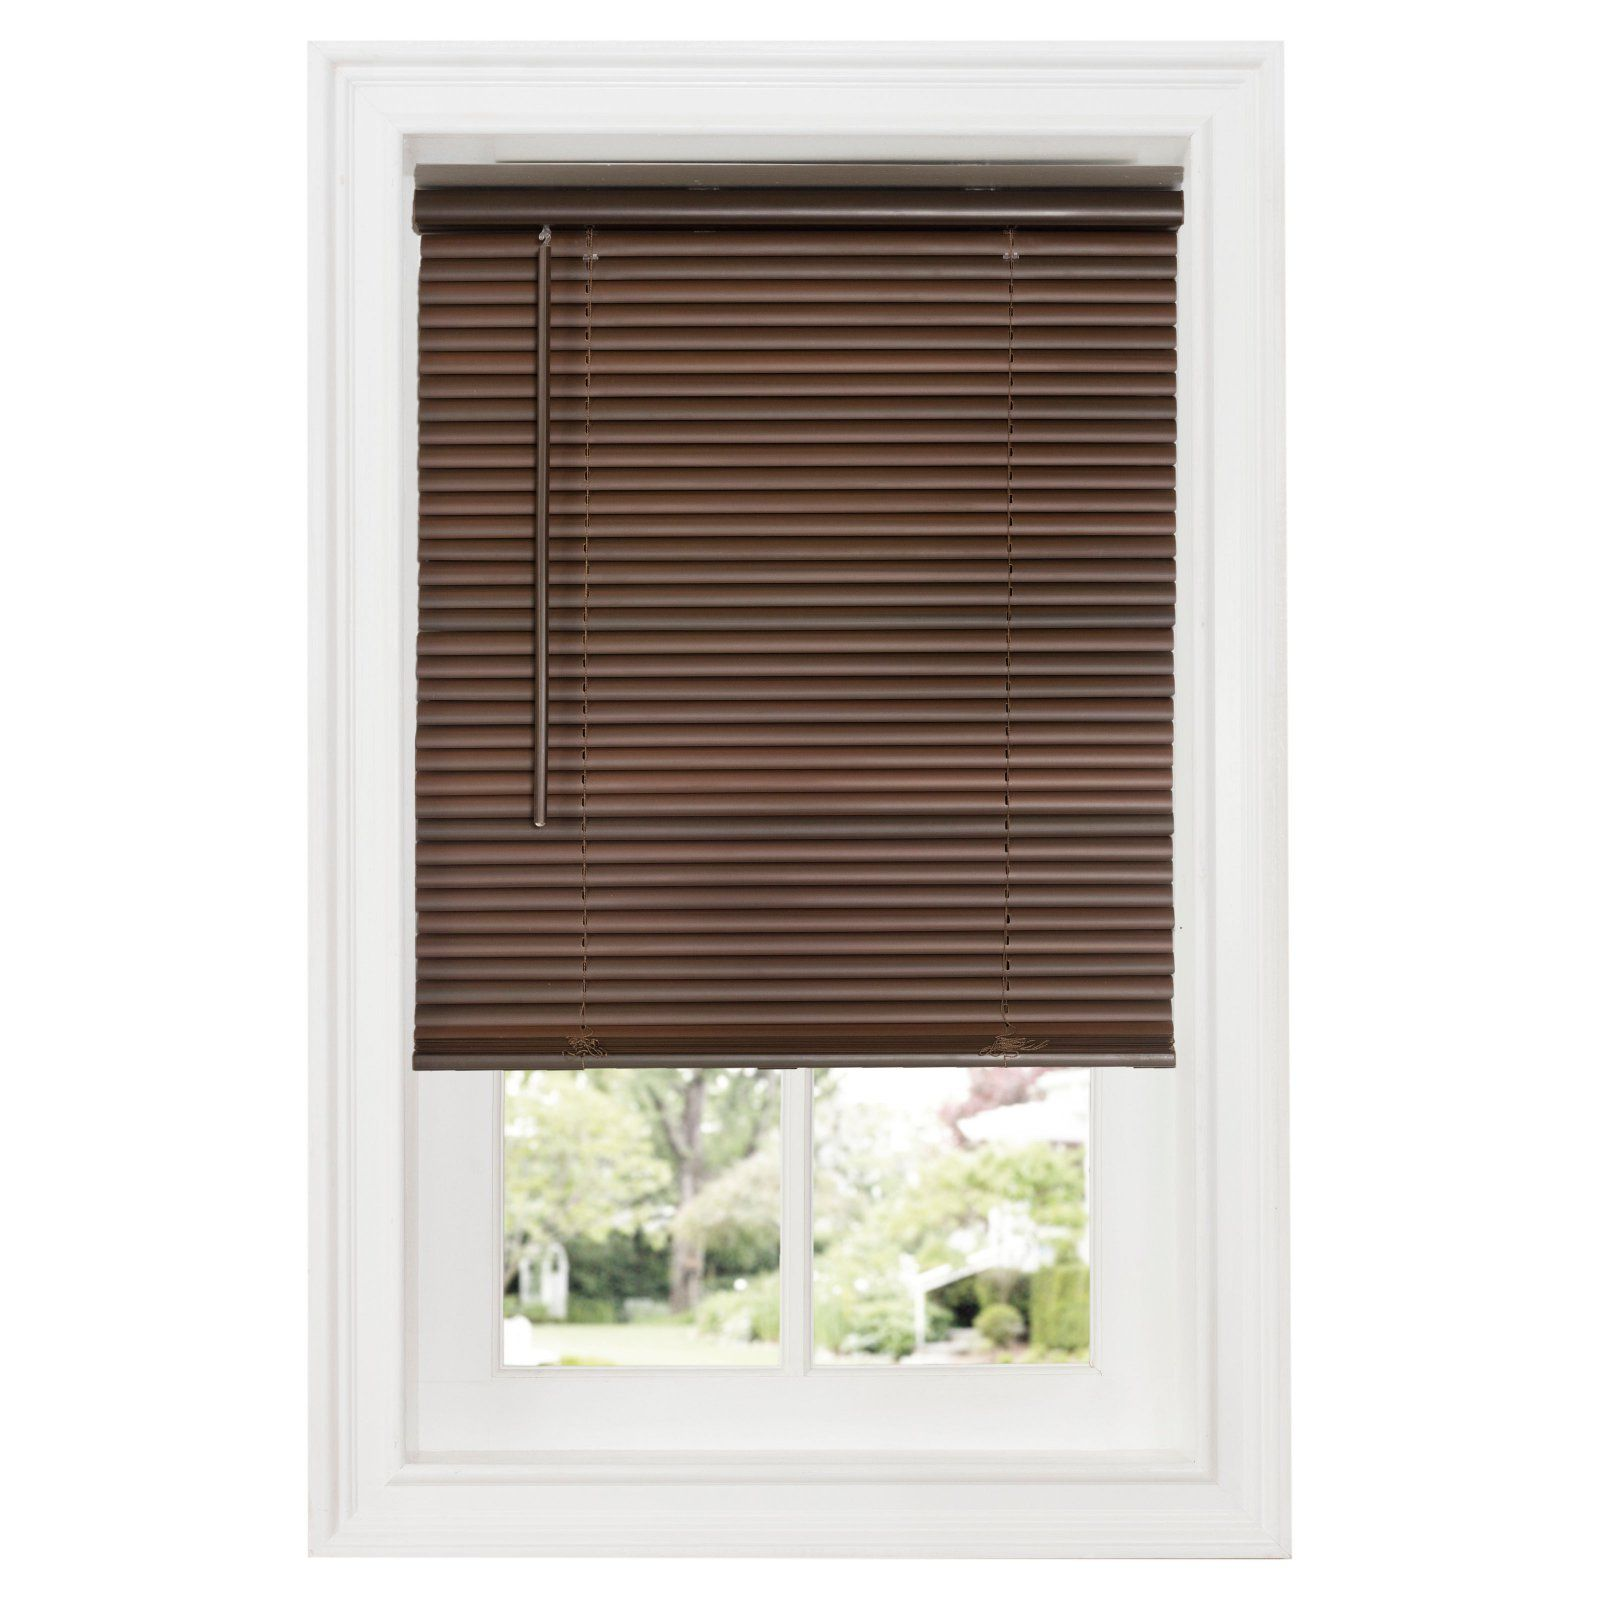 Achim 1 In Gii Deluxe Sundown Room Darkening Cordless Vinyl Mini Blinds Mahogany Blinds Mini Blinds Room Darkening